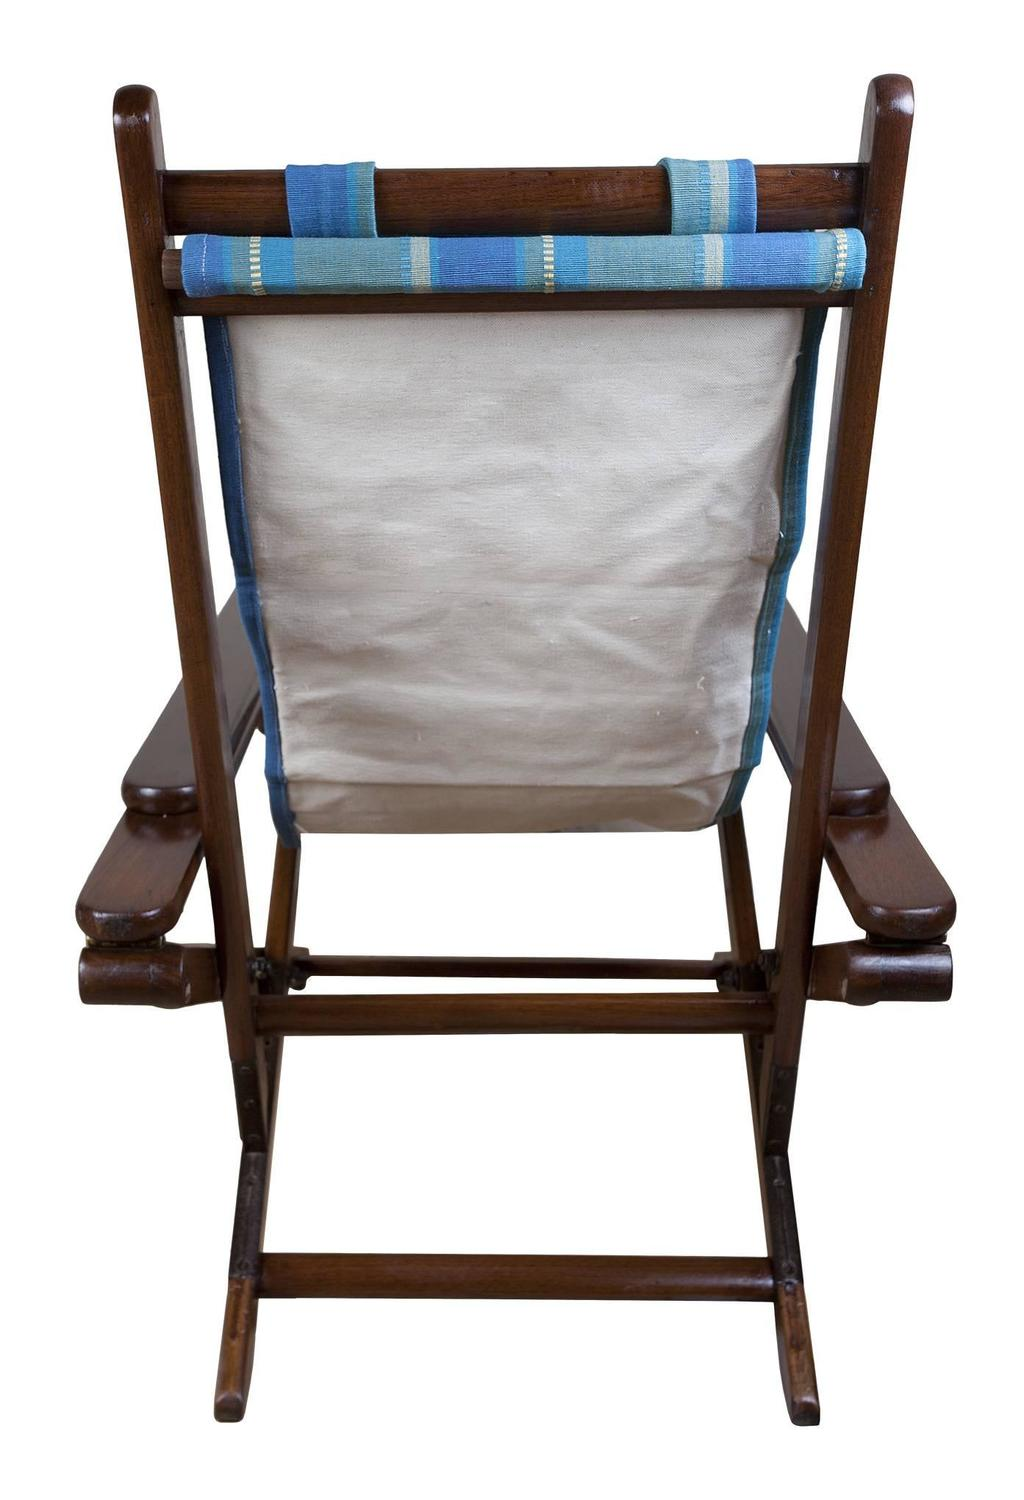 Pair Of British Campaign Folding And Adjustable Chairs